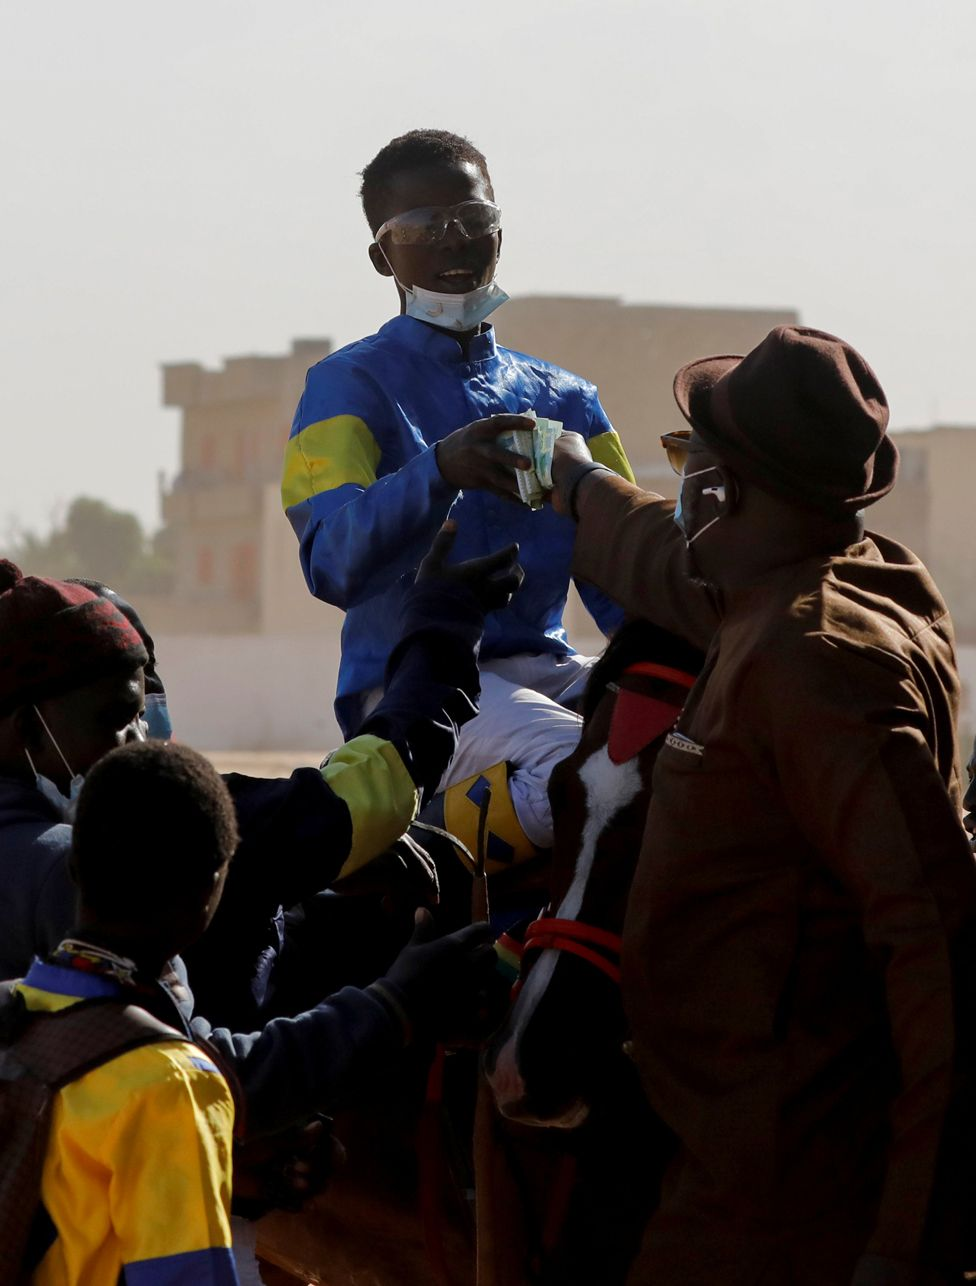 Fallou Diop is handed prize money after winning a race in Thies, Senegal, 7 February 2021